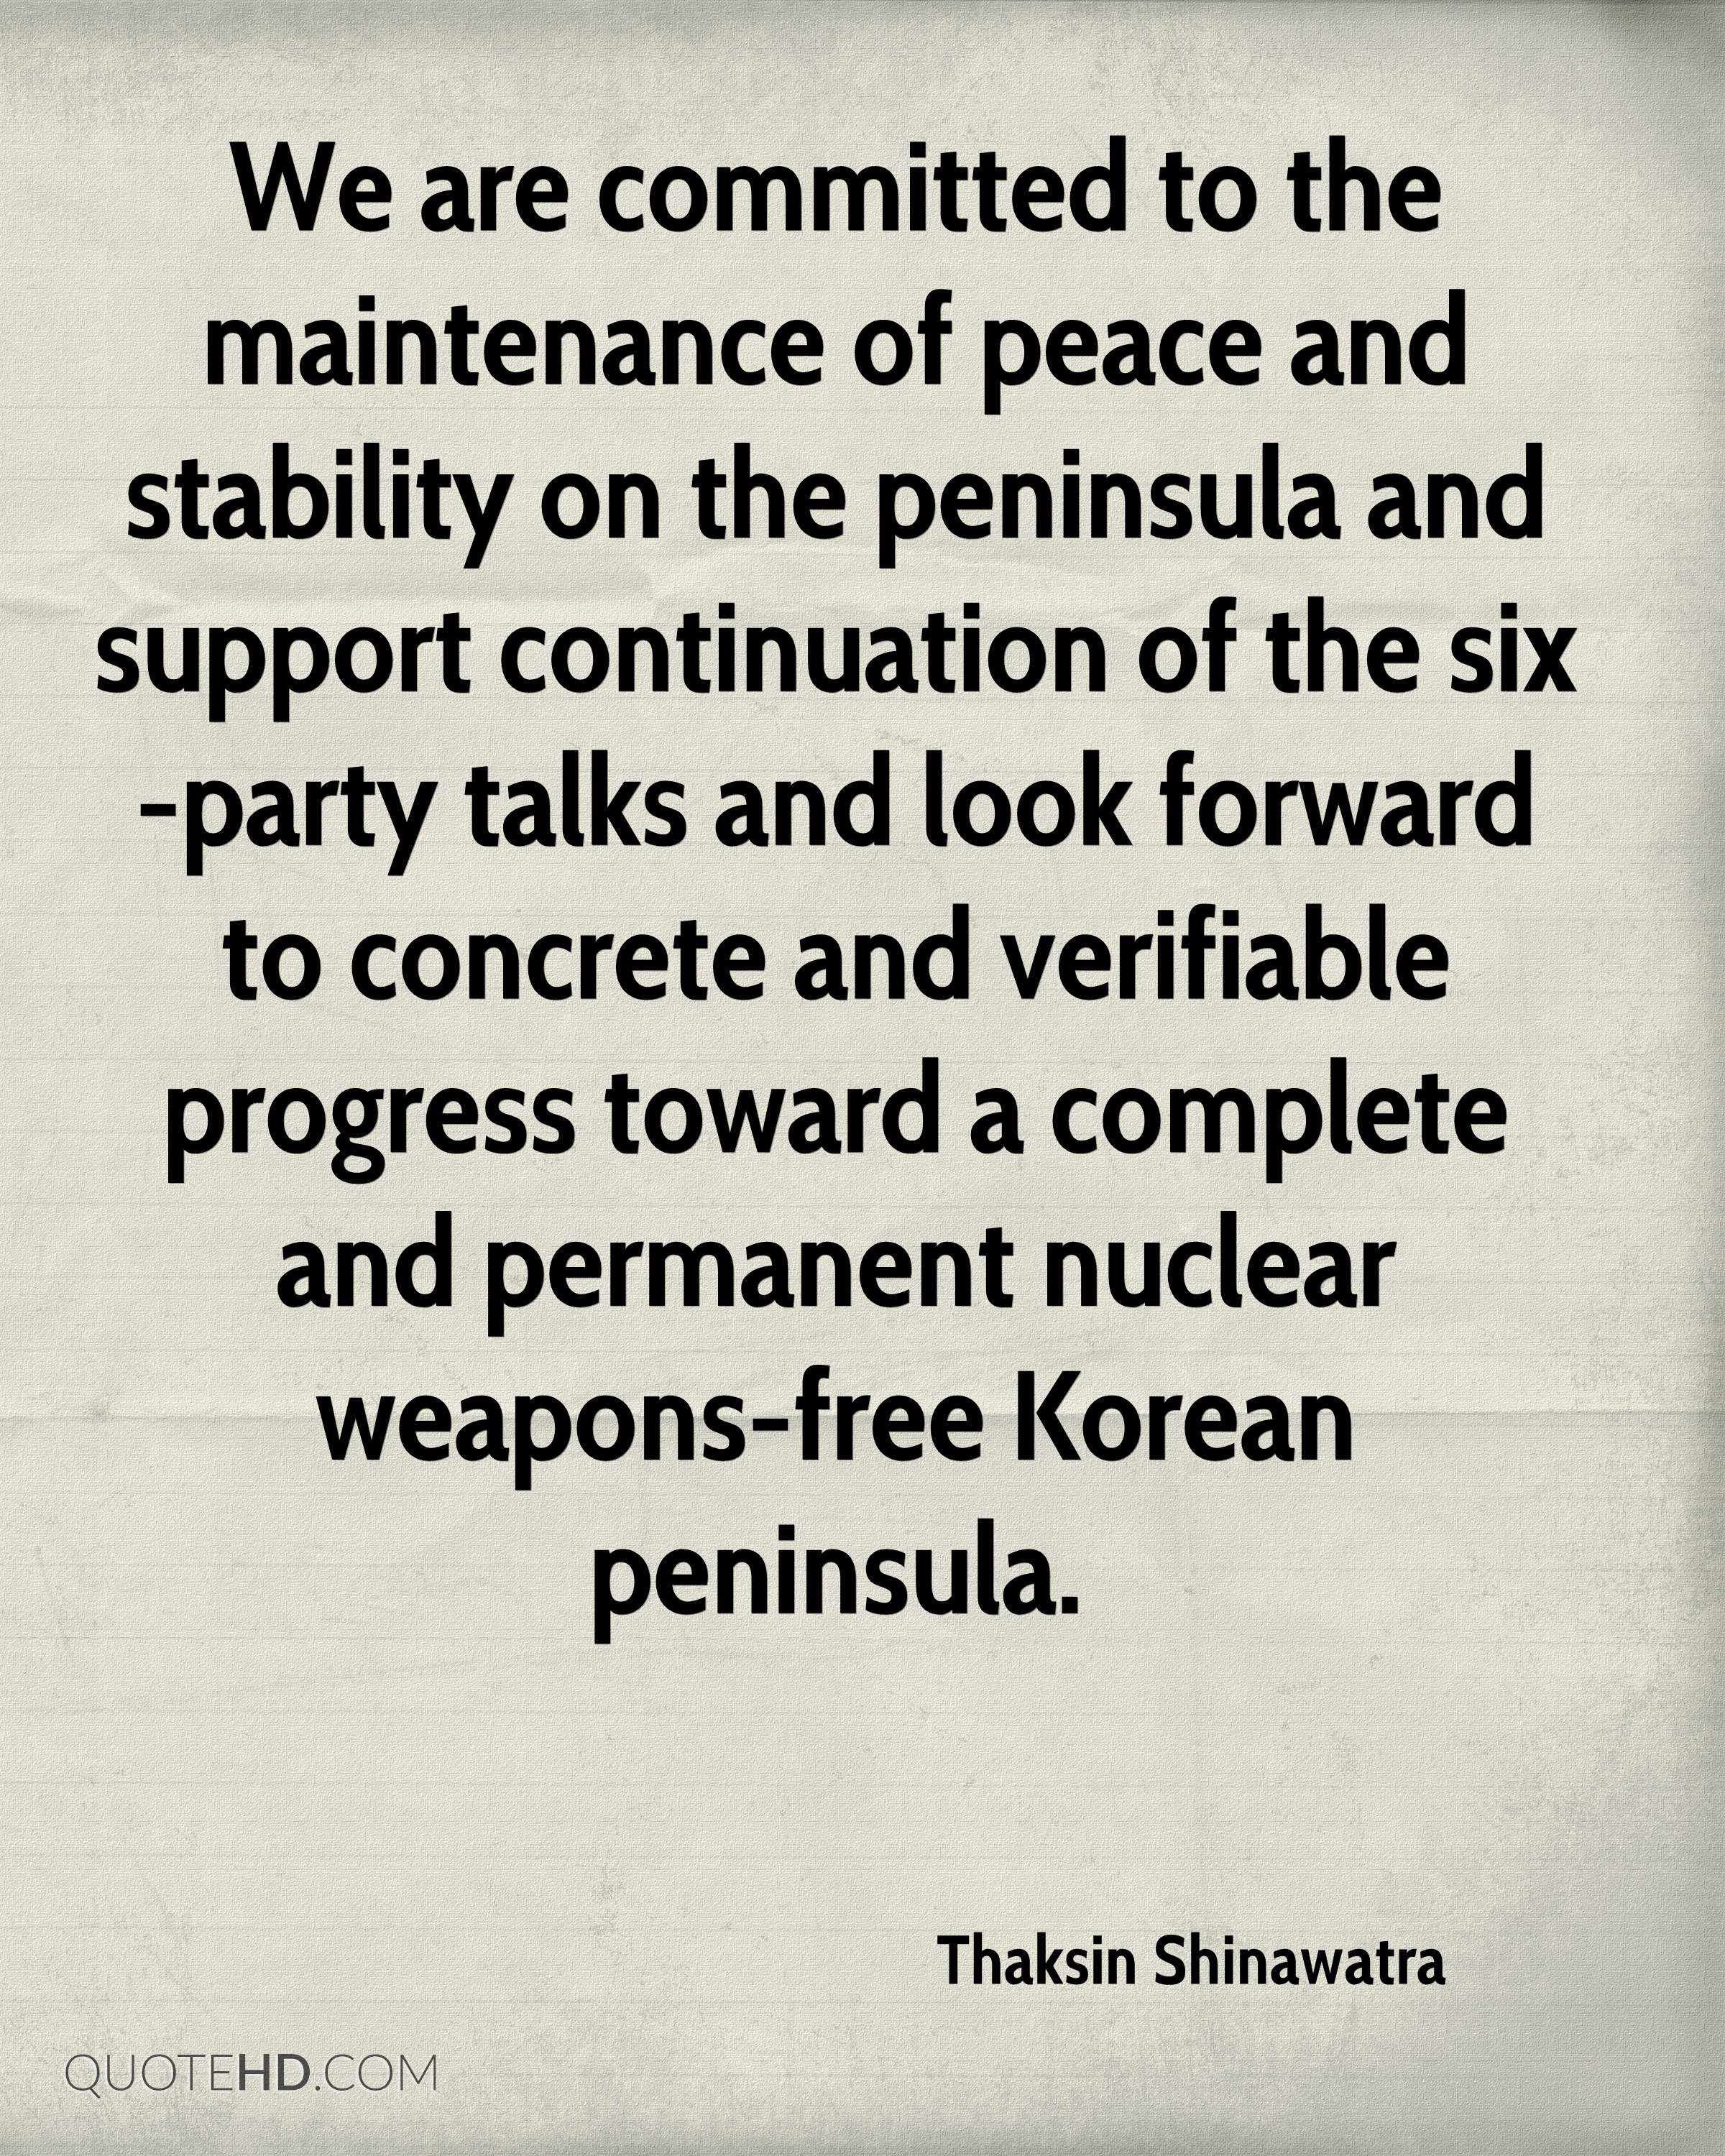 We are committed to the maintenance of peace and stability on the peninsula and support continuation of the six-party talks and look forward to concrete and verifiable progress toward a complete and permanent nuclear weapons-free Korean peninsula.